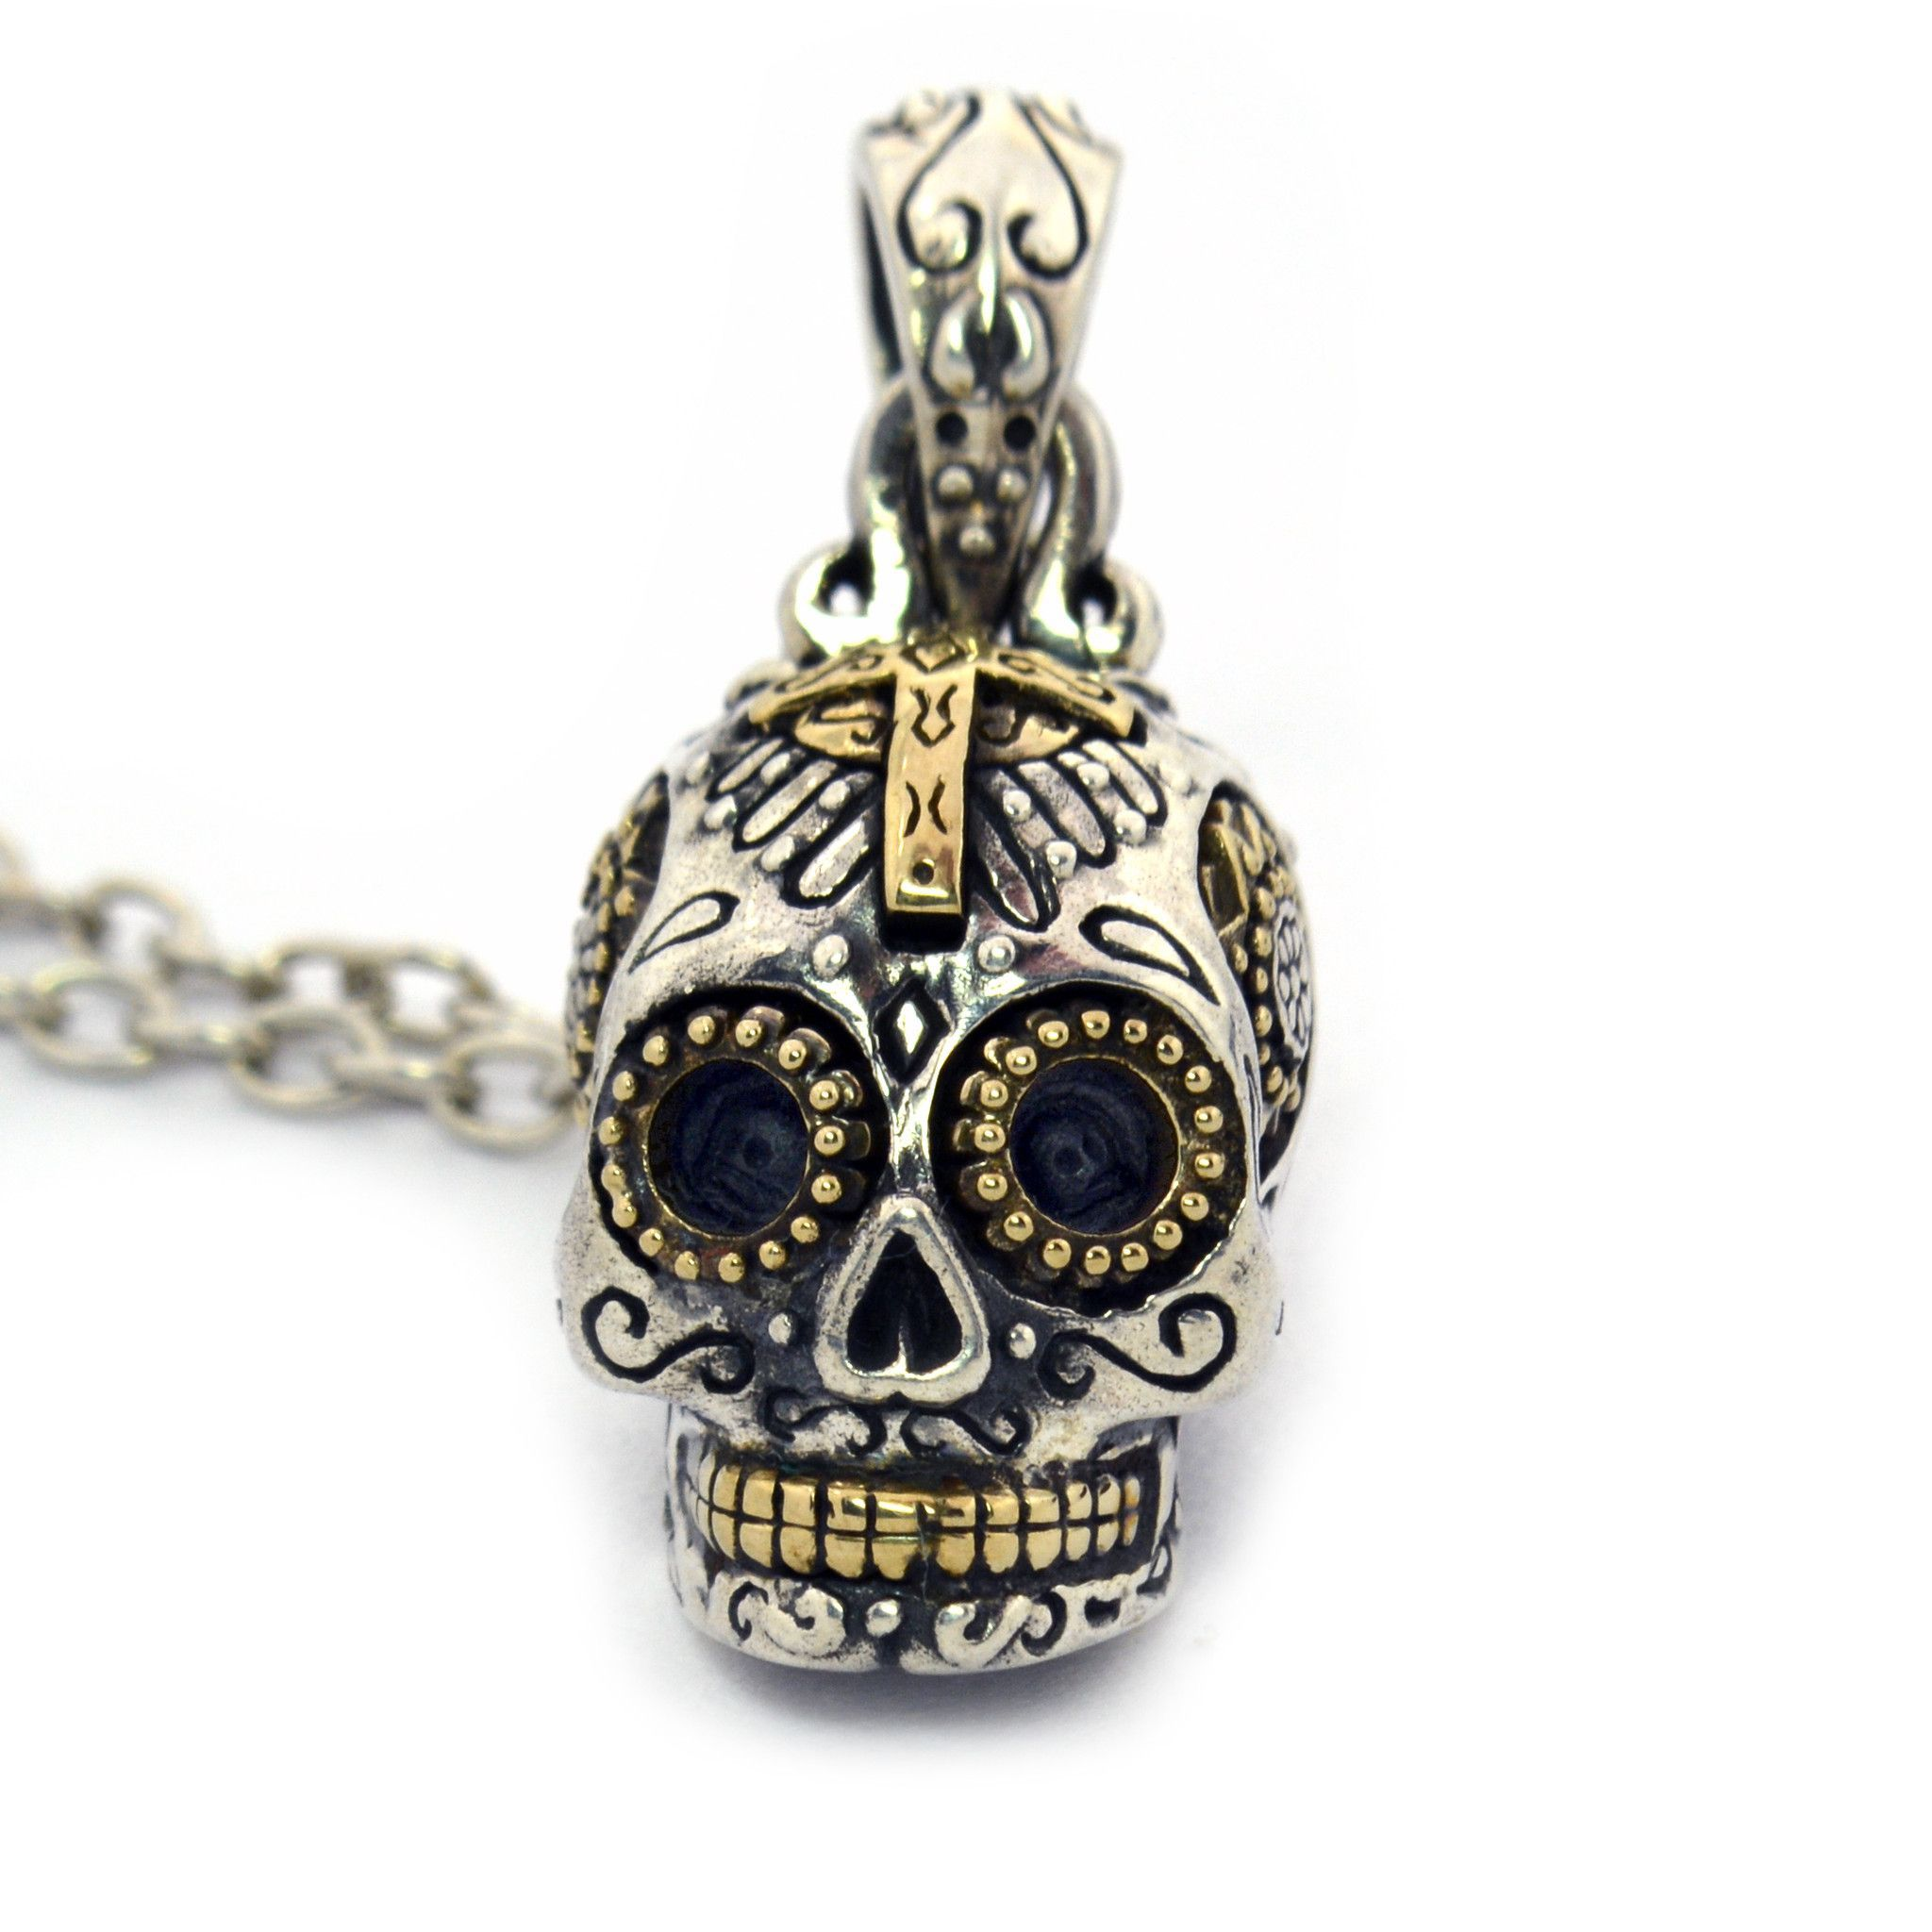 sugar on pendants man necklace from mens fashion item skull jewelry pendant large stainless for accessories in steel